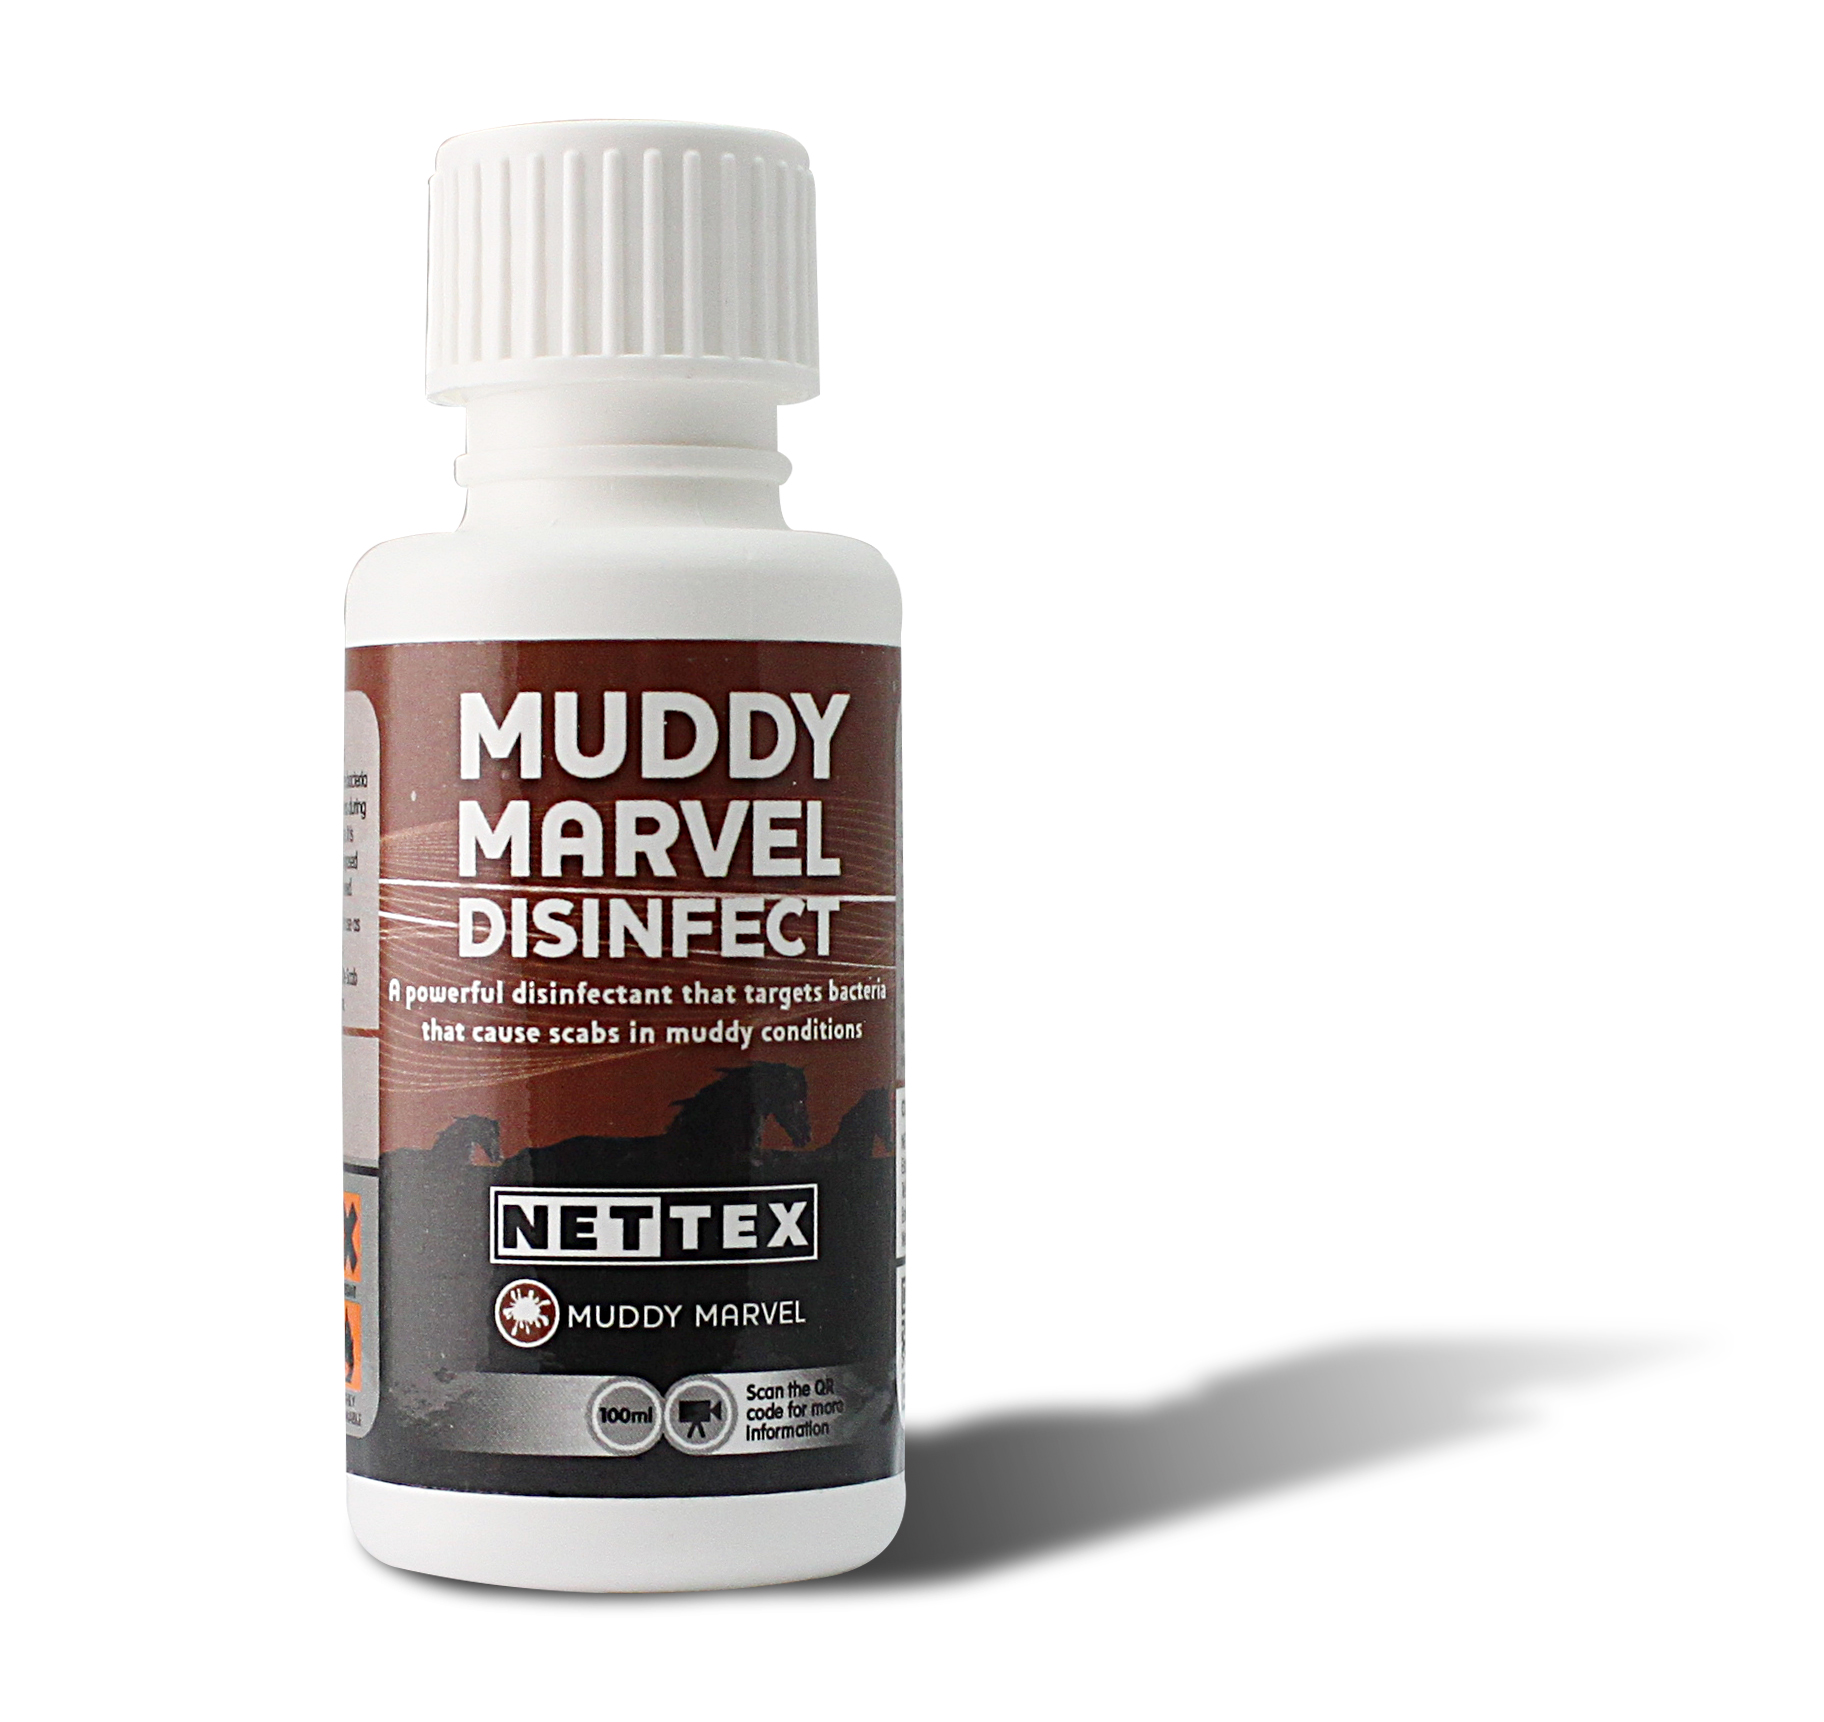 Net-Tex Muddy Marvel Disinfect for Horses